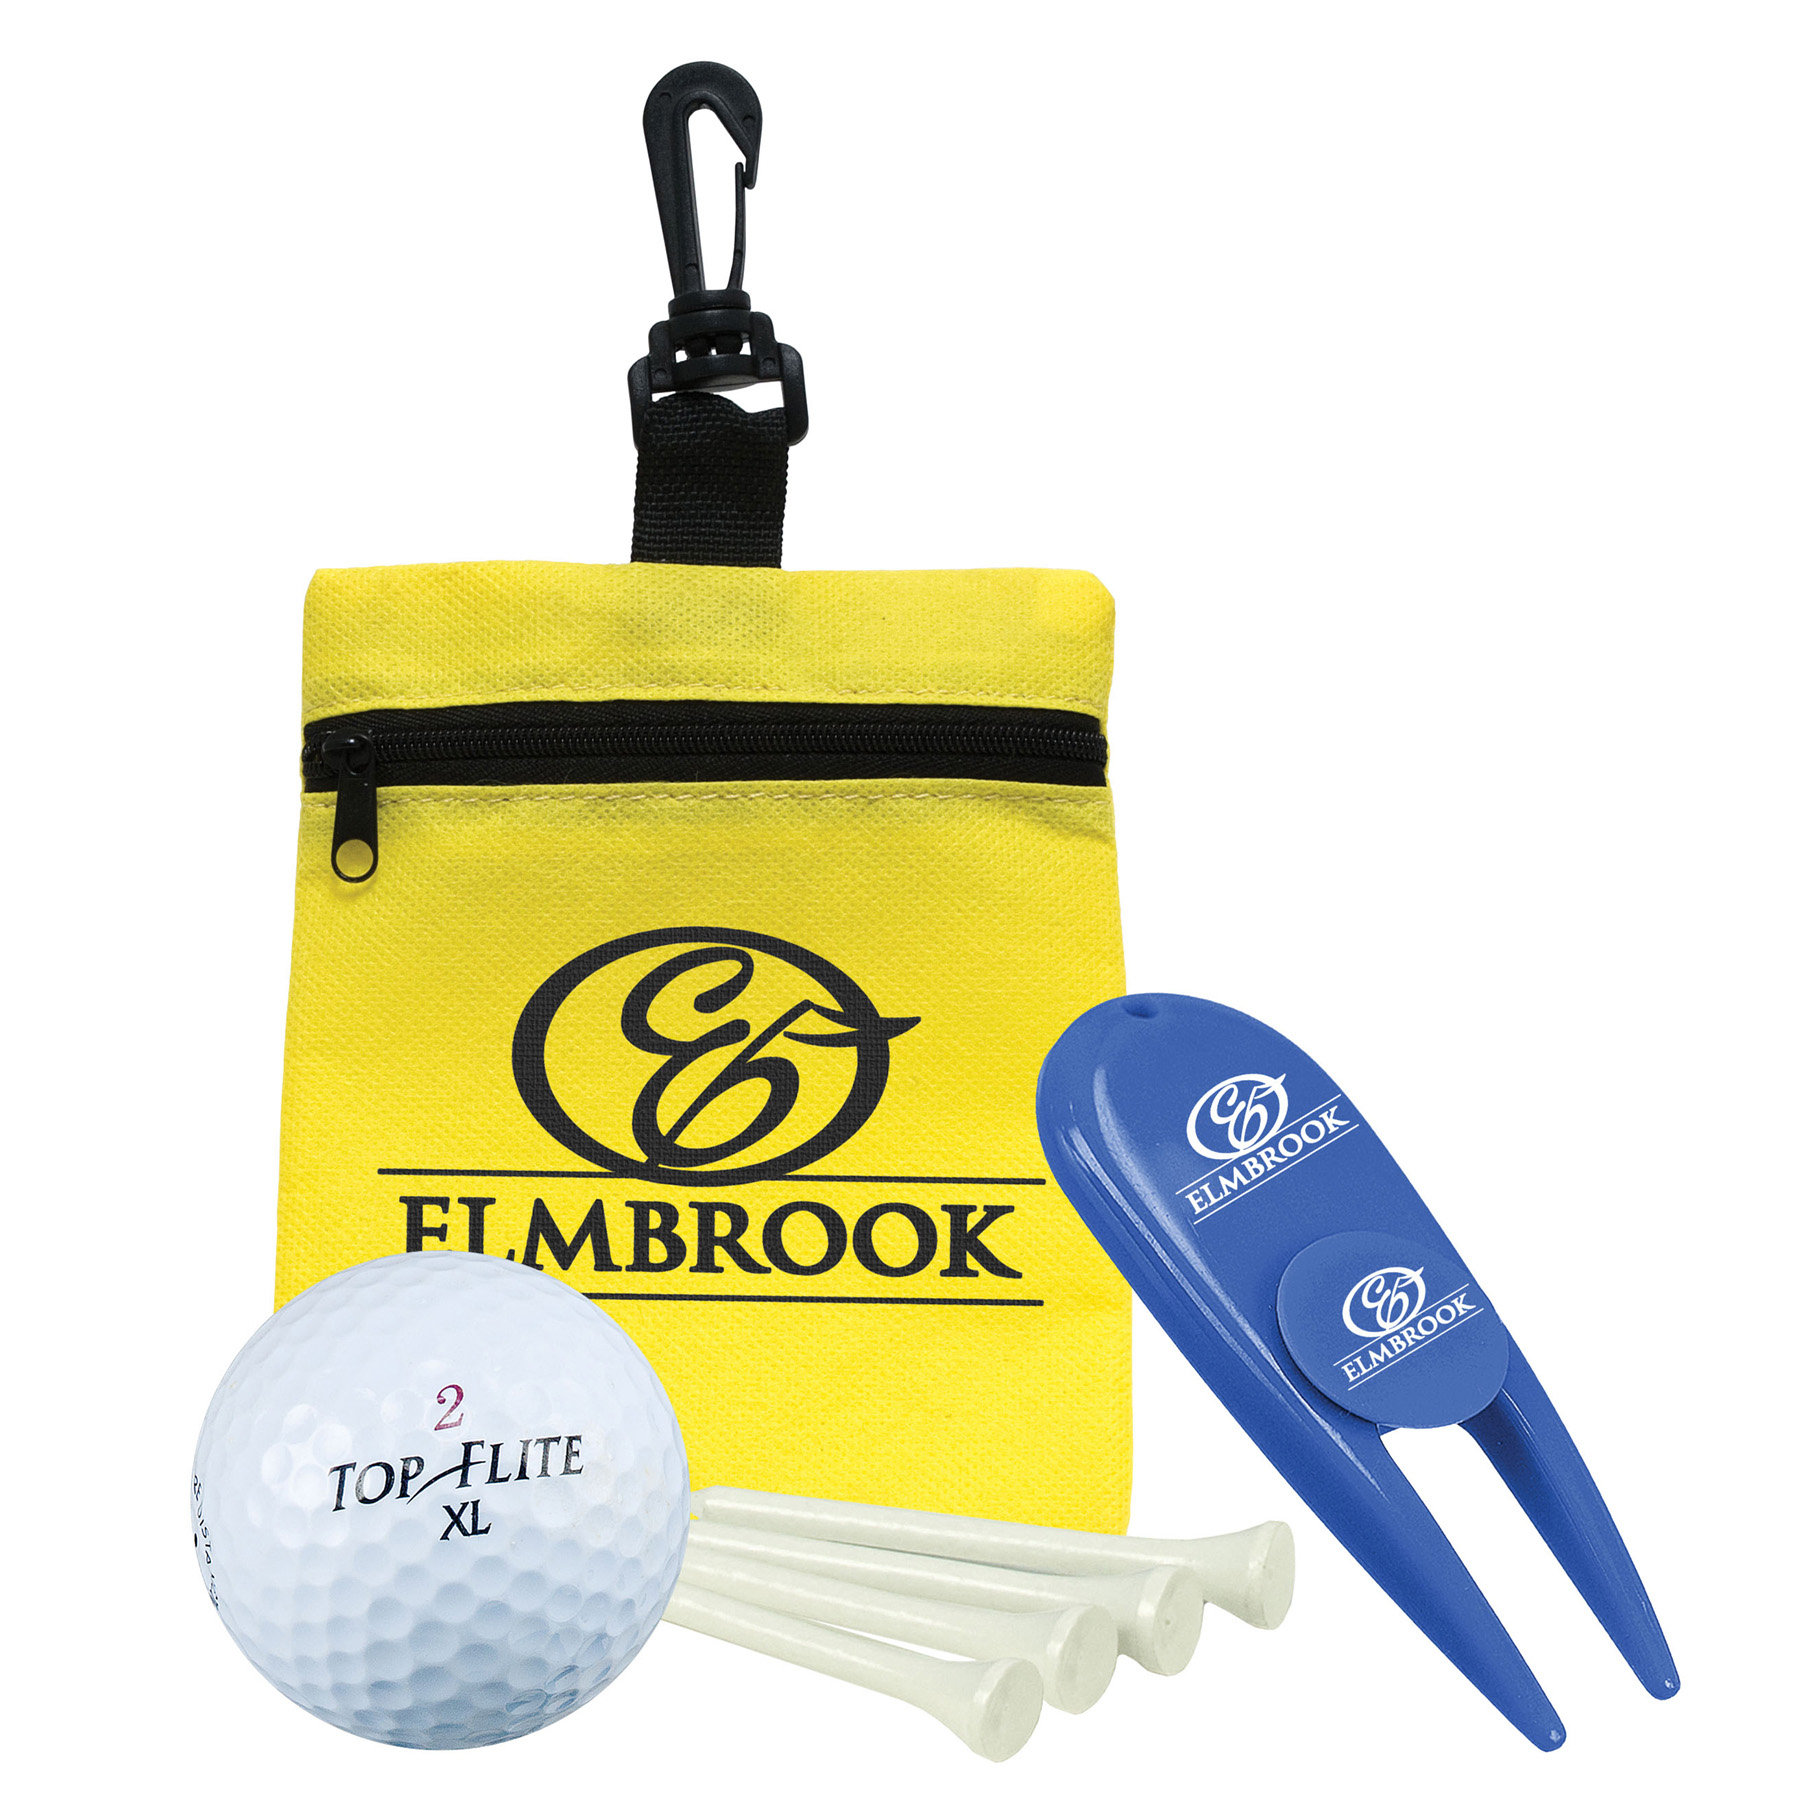 Golf-in-a-Bag Gift Set, 662-K, One Colour Imprint